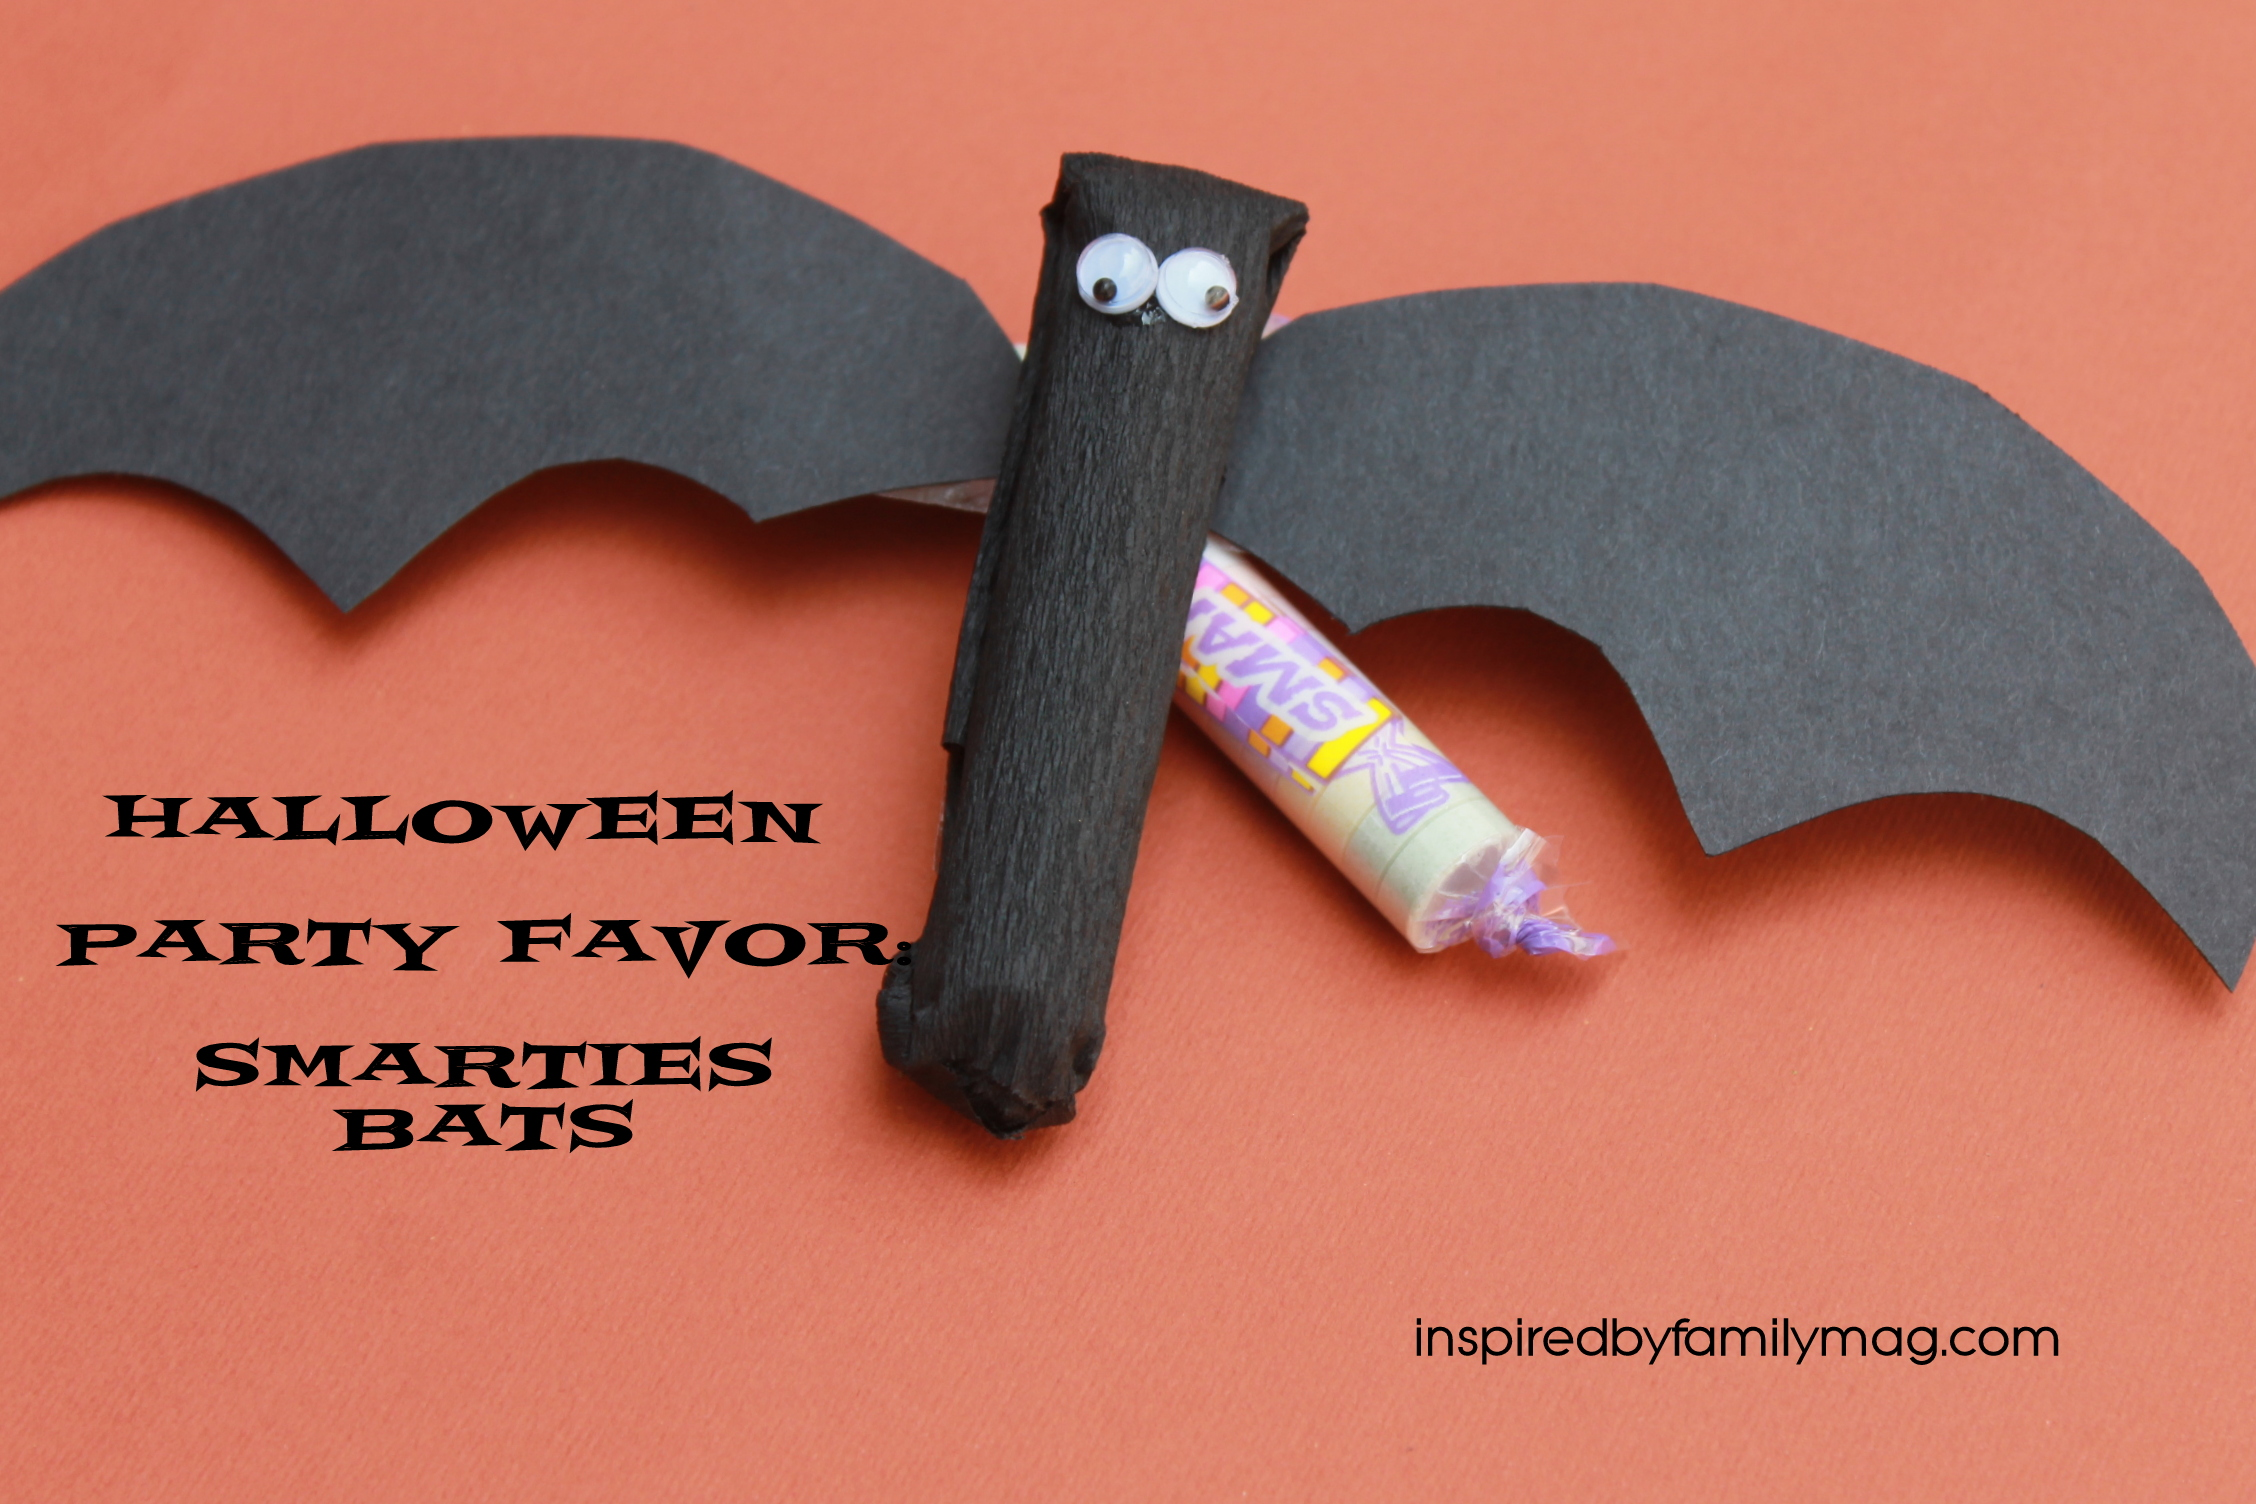 halloween party treats: smarties bats - inspiredfamily